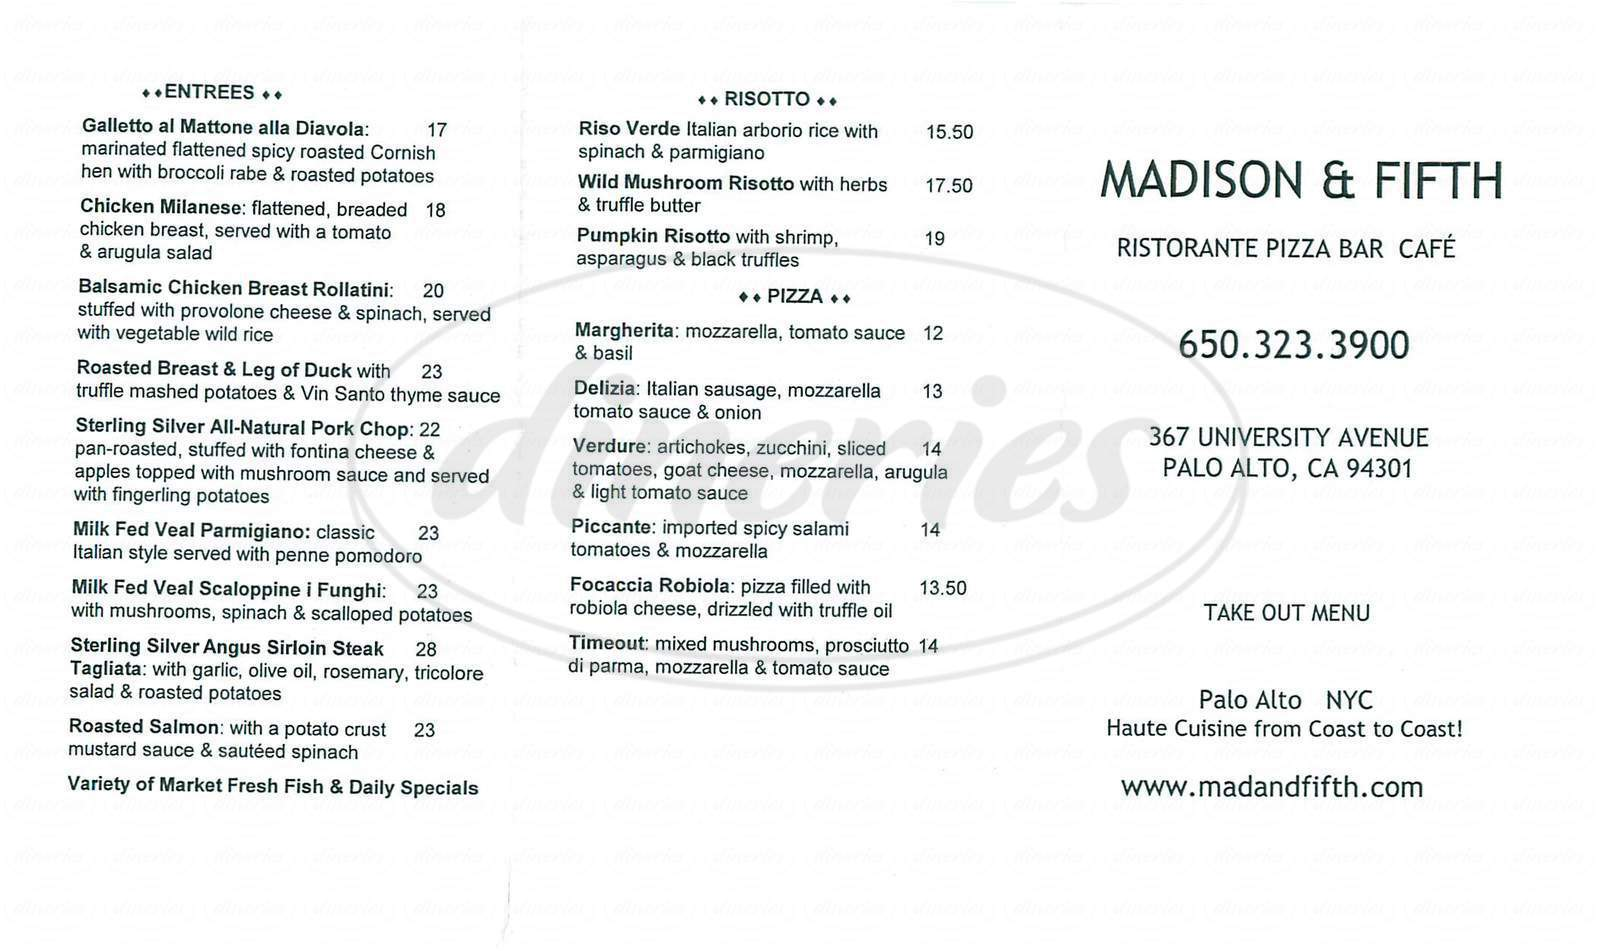 menu for Madison & Fifth